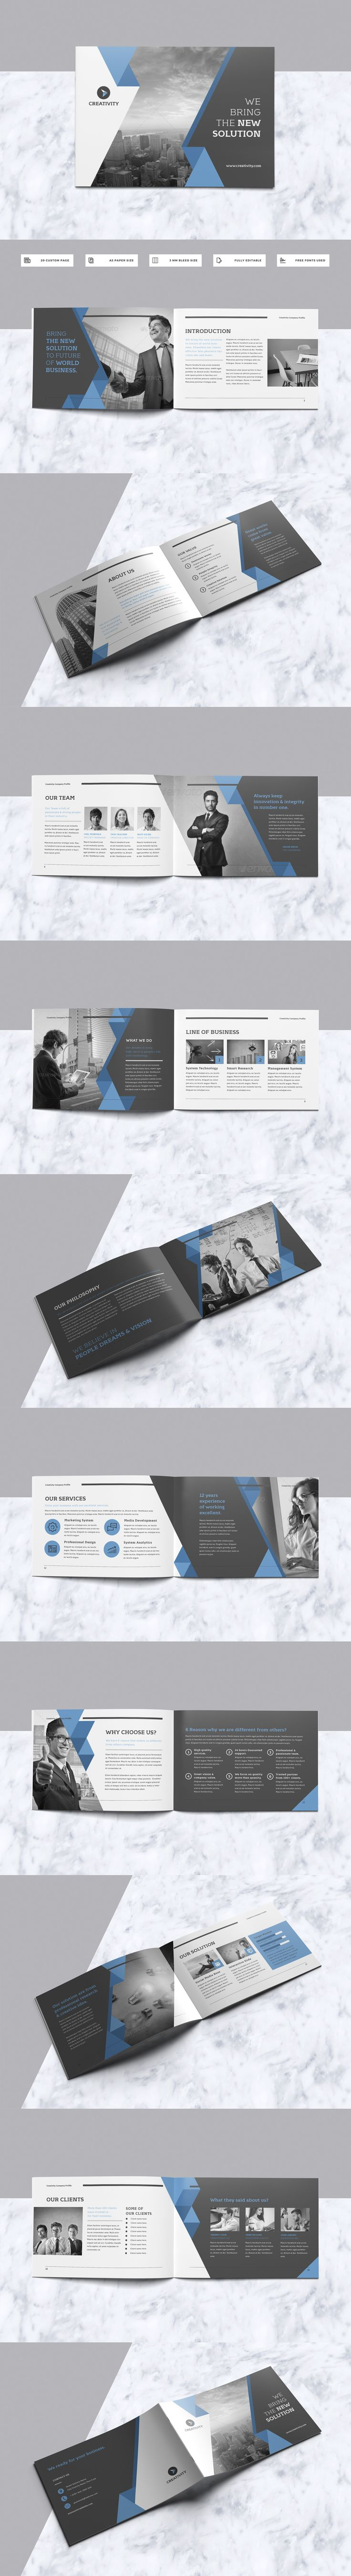 Professional & Modern A5 Brochure Template INDD With 20 Custom Pages Design                                                                                                                                                                                 Mais